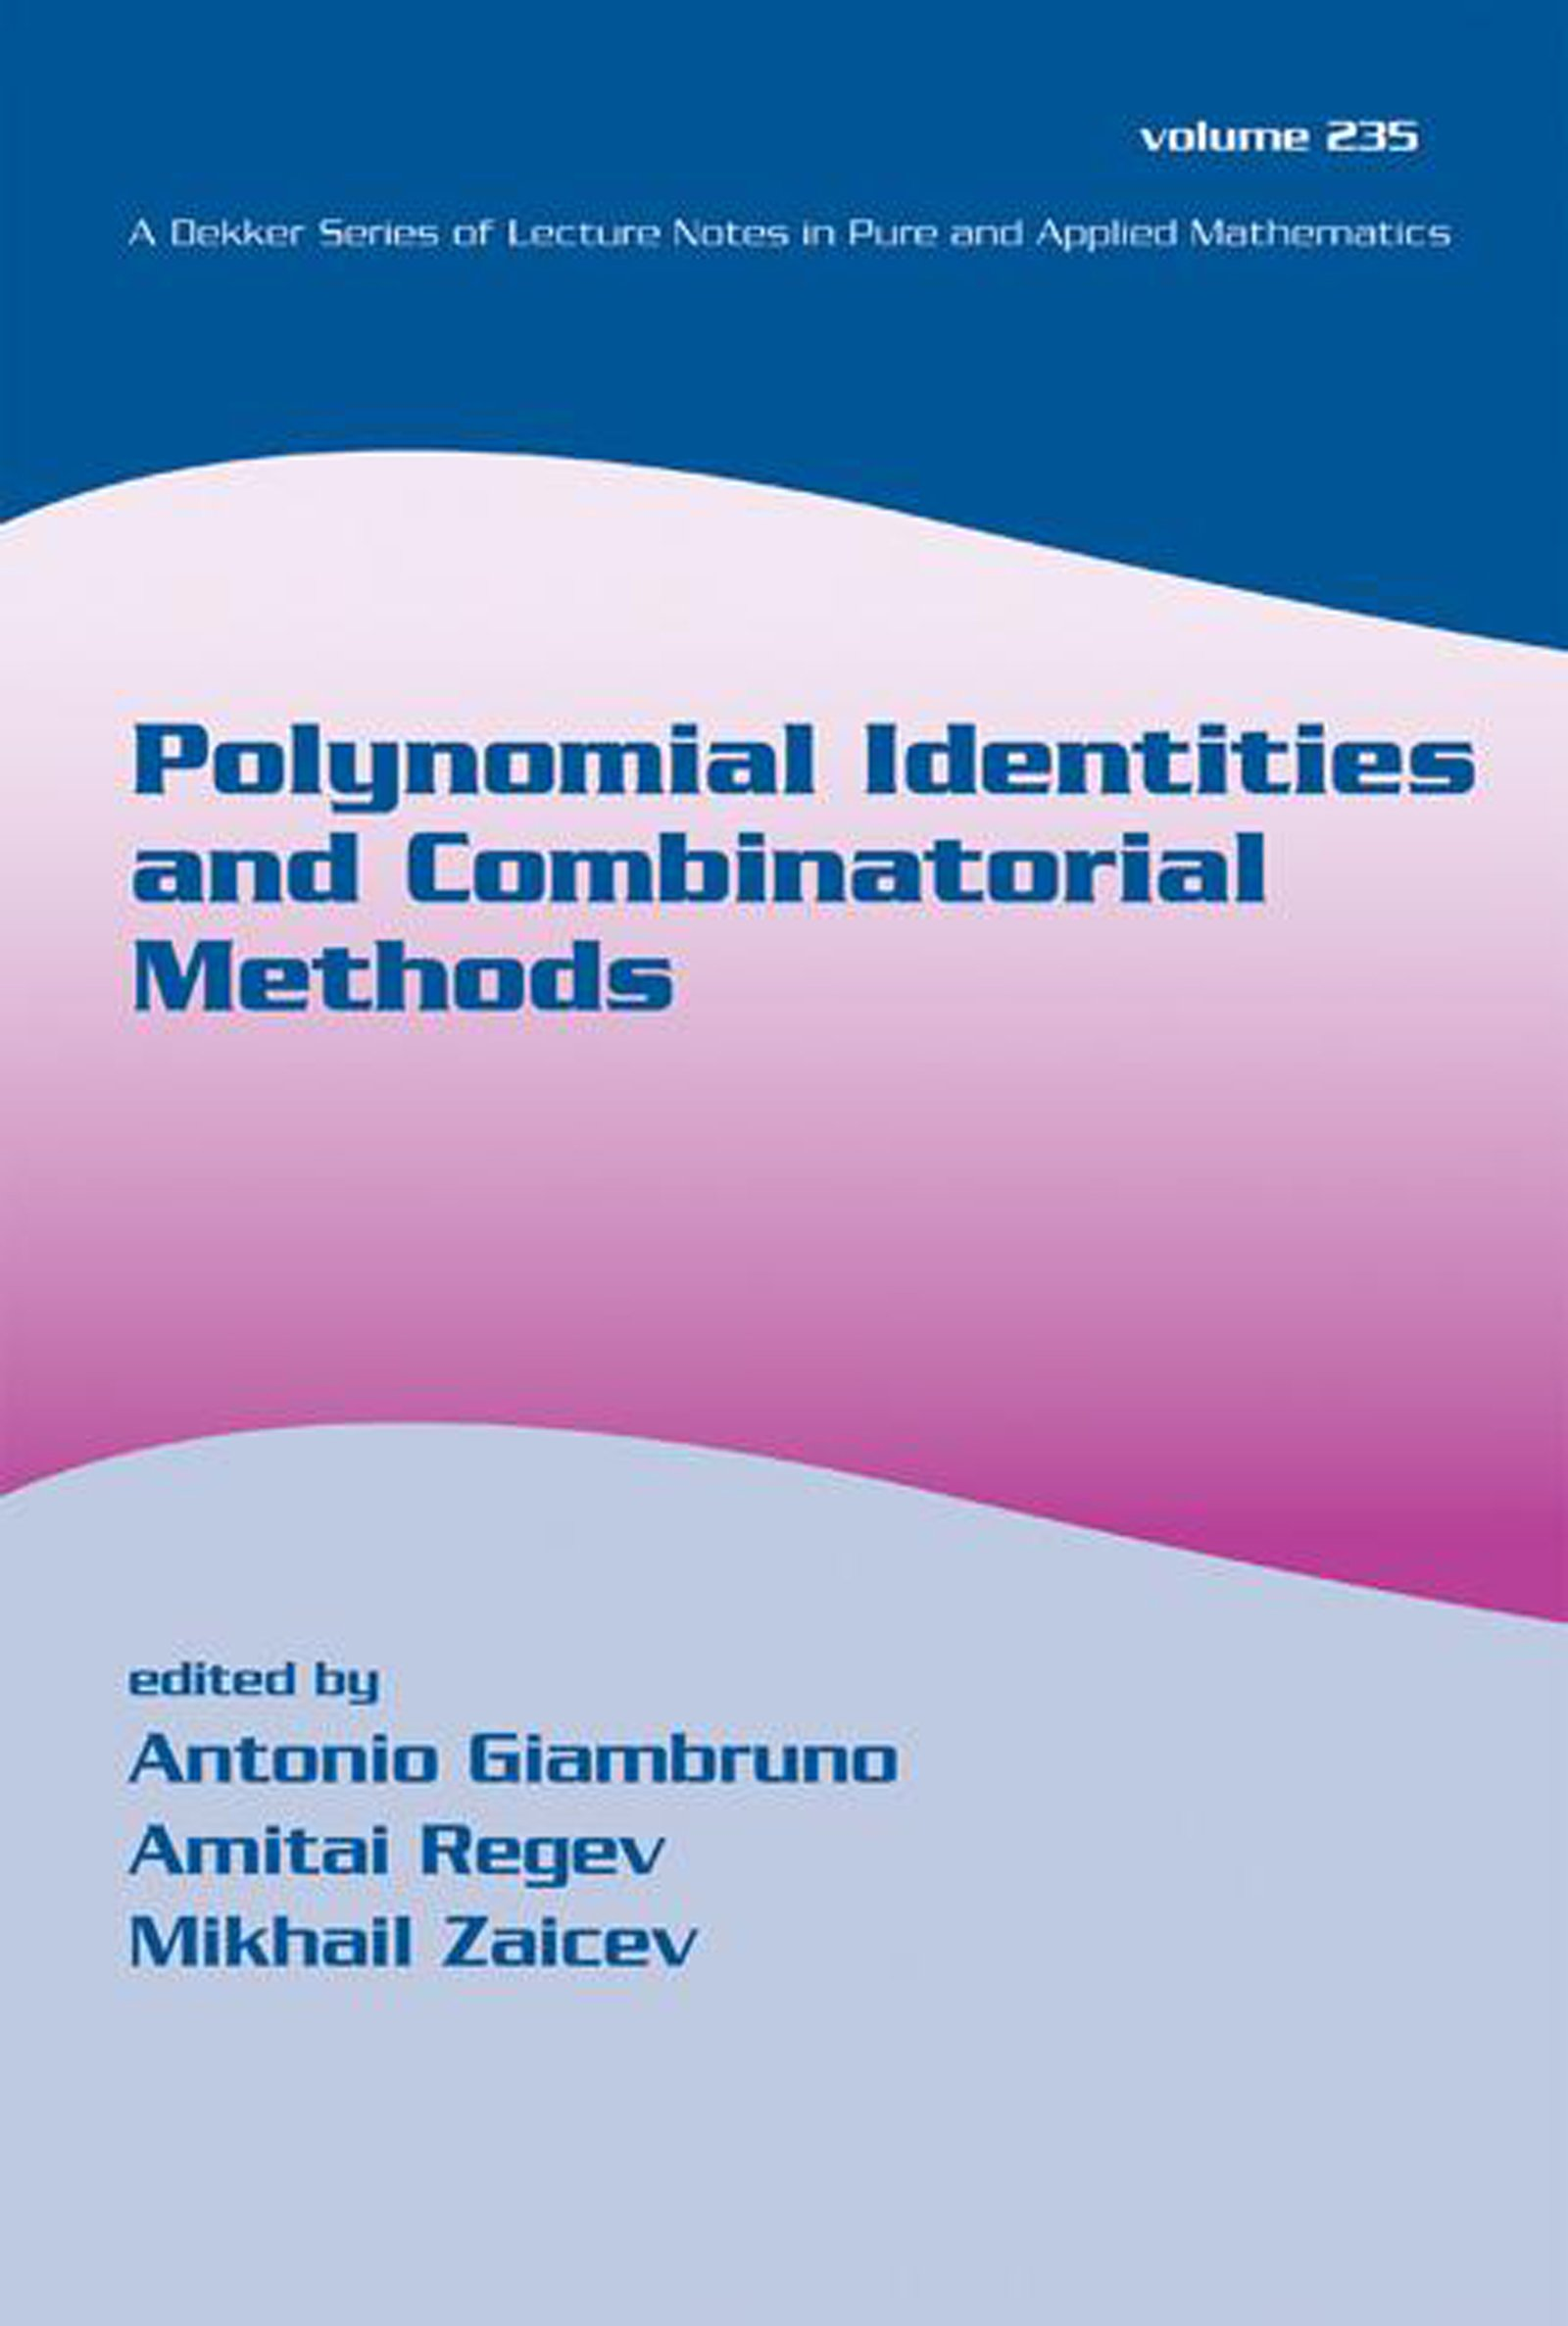 Polynomial Identities And Combinatorial Methods book cover